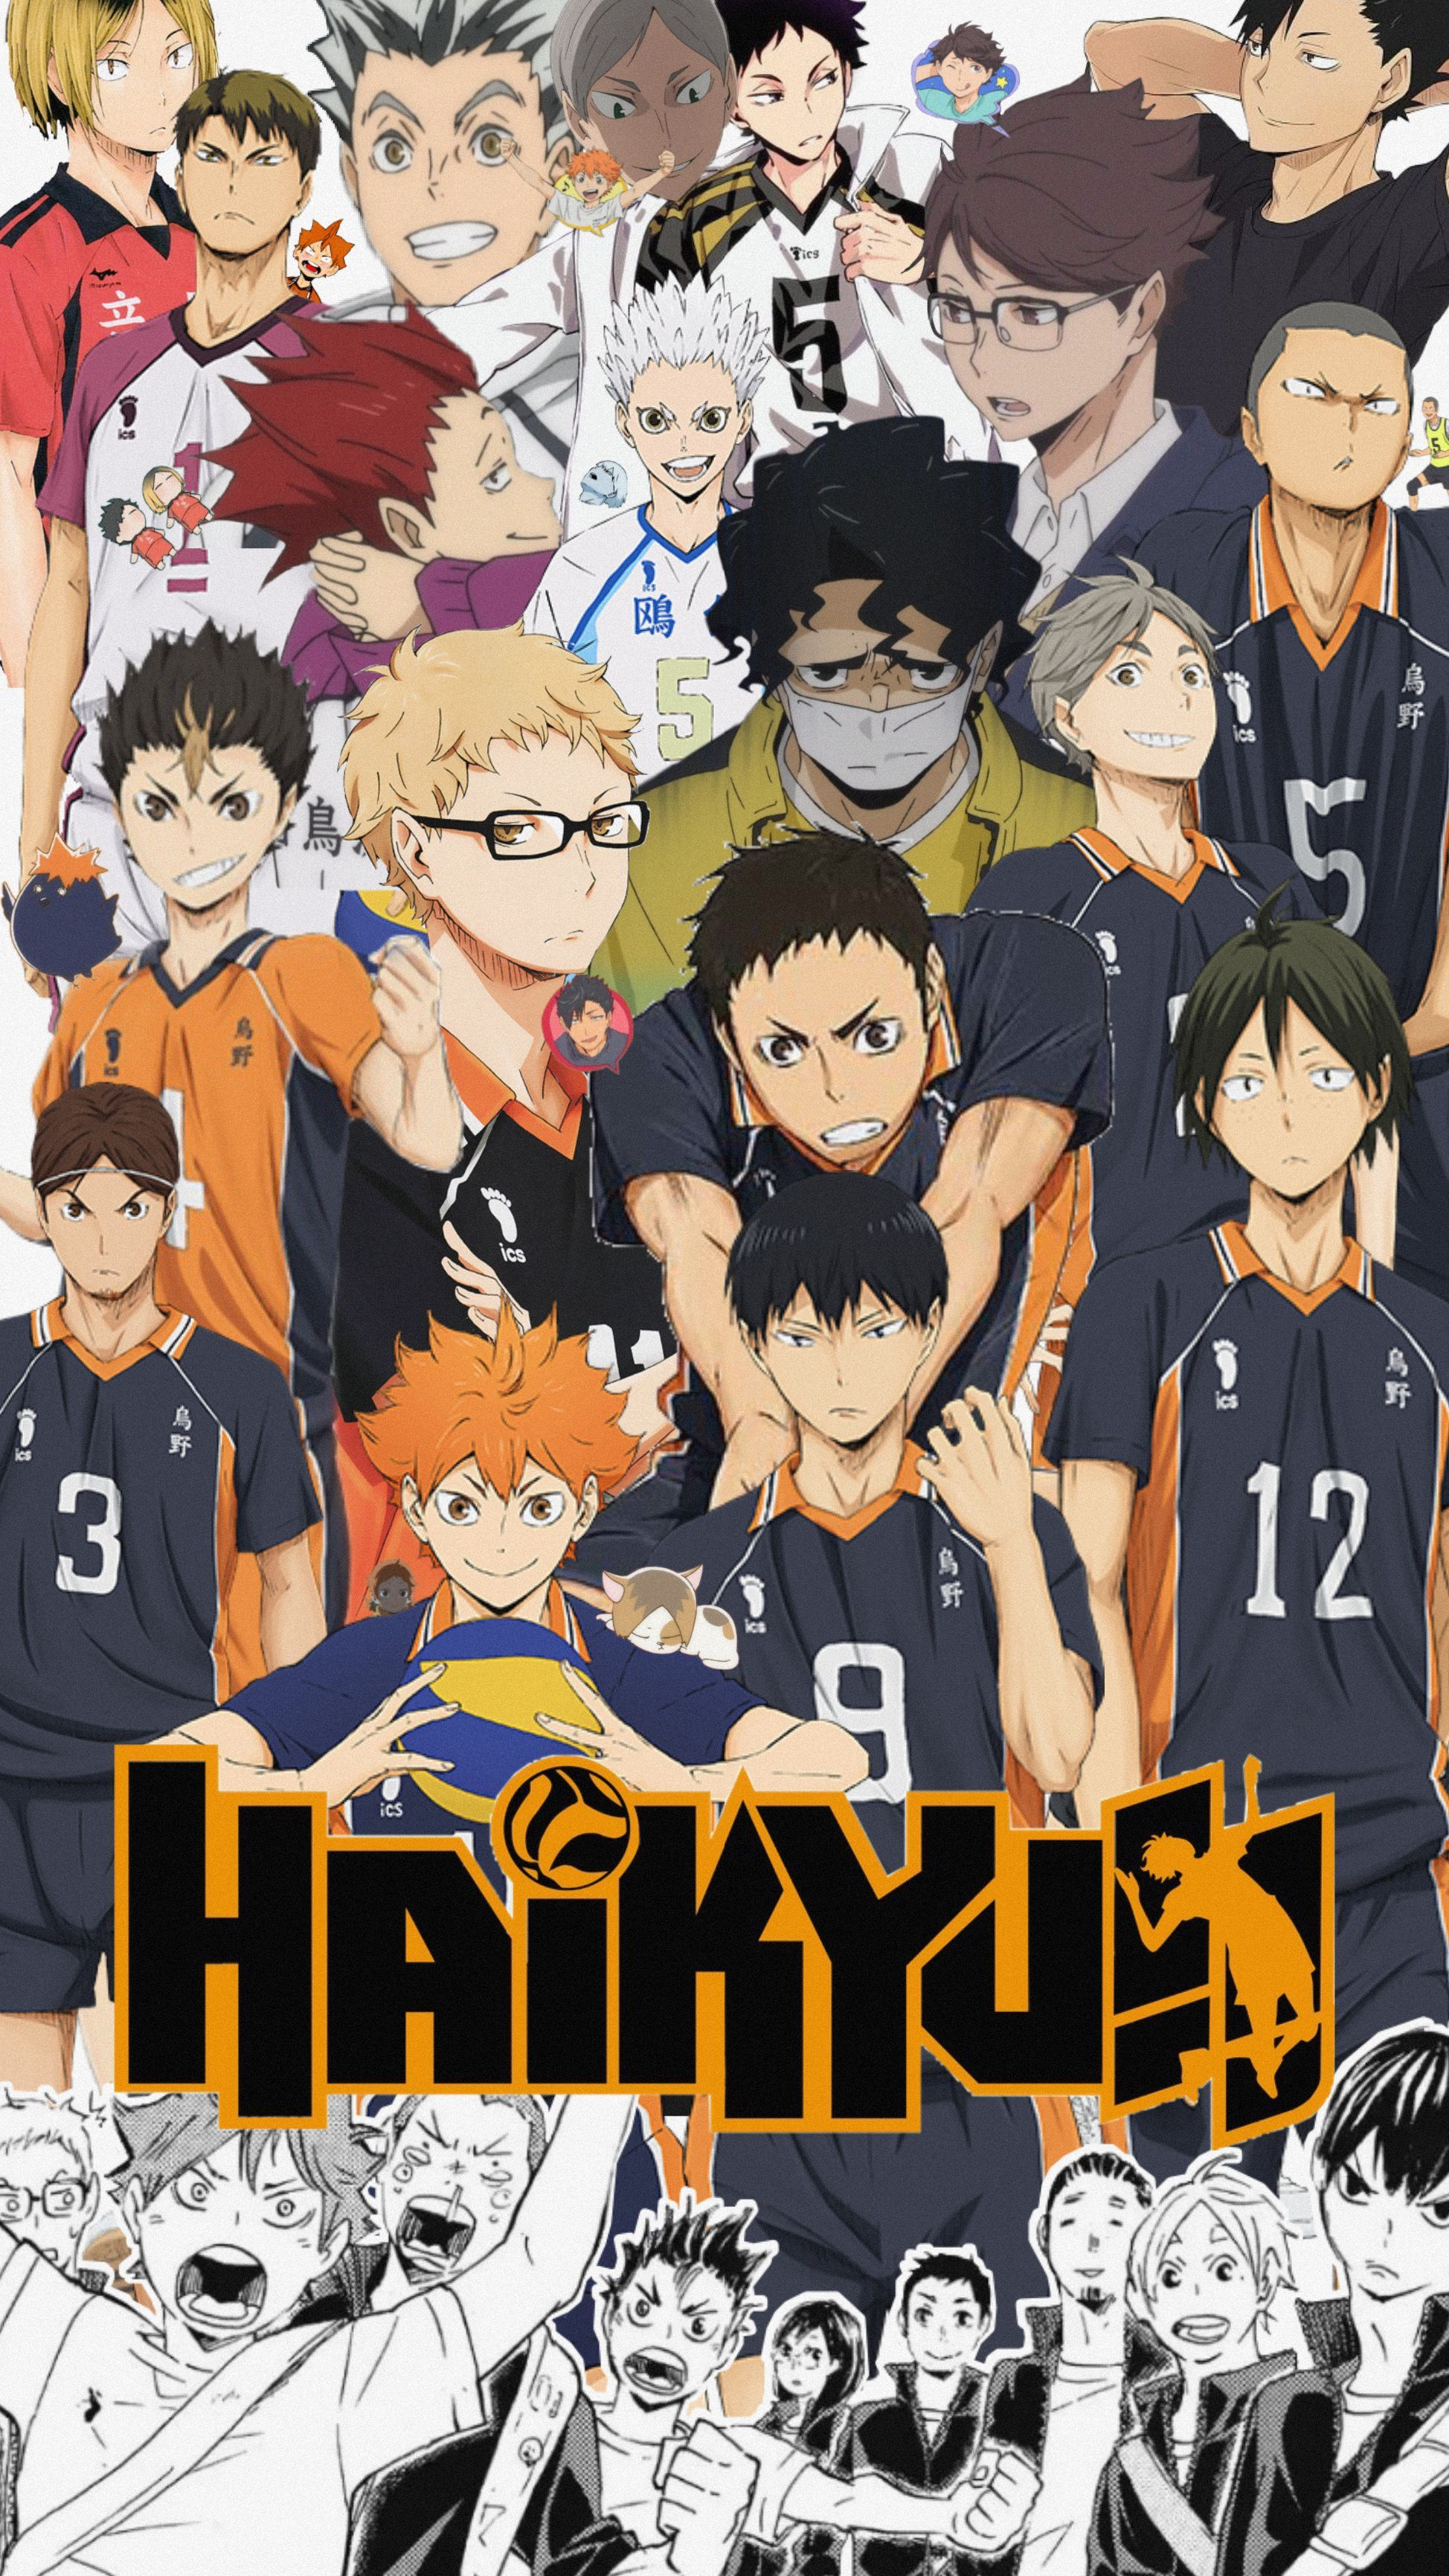 Download wallpaper haikyuu HD - Wallpapers Book - Your #1 Source for free  download HD, 4K & high quality wallpapers